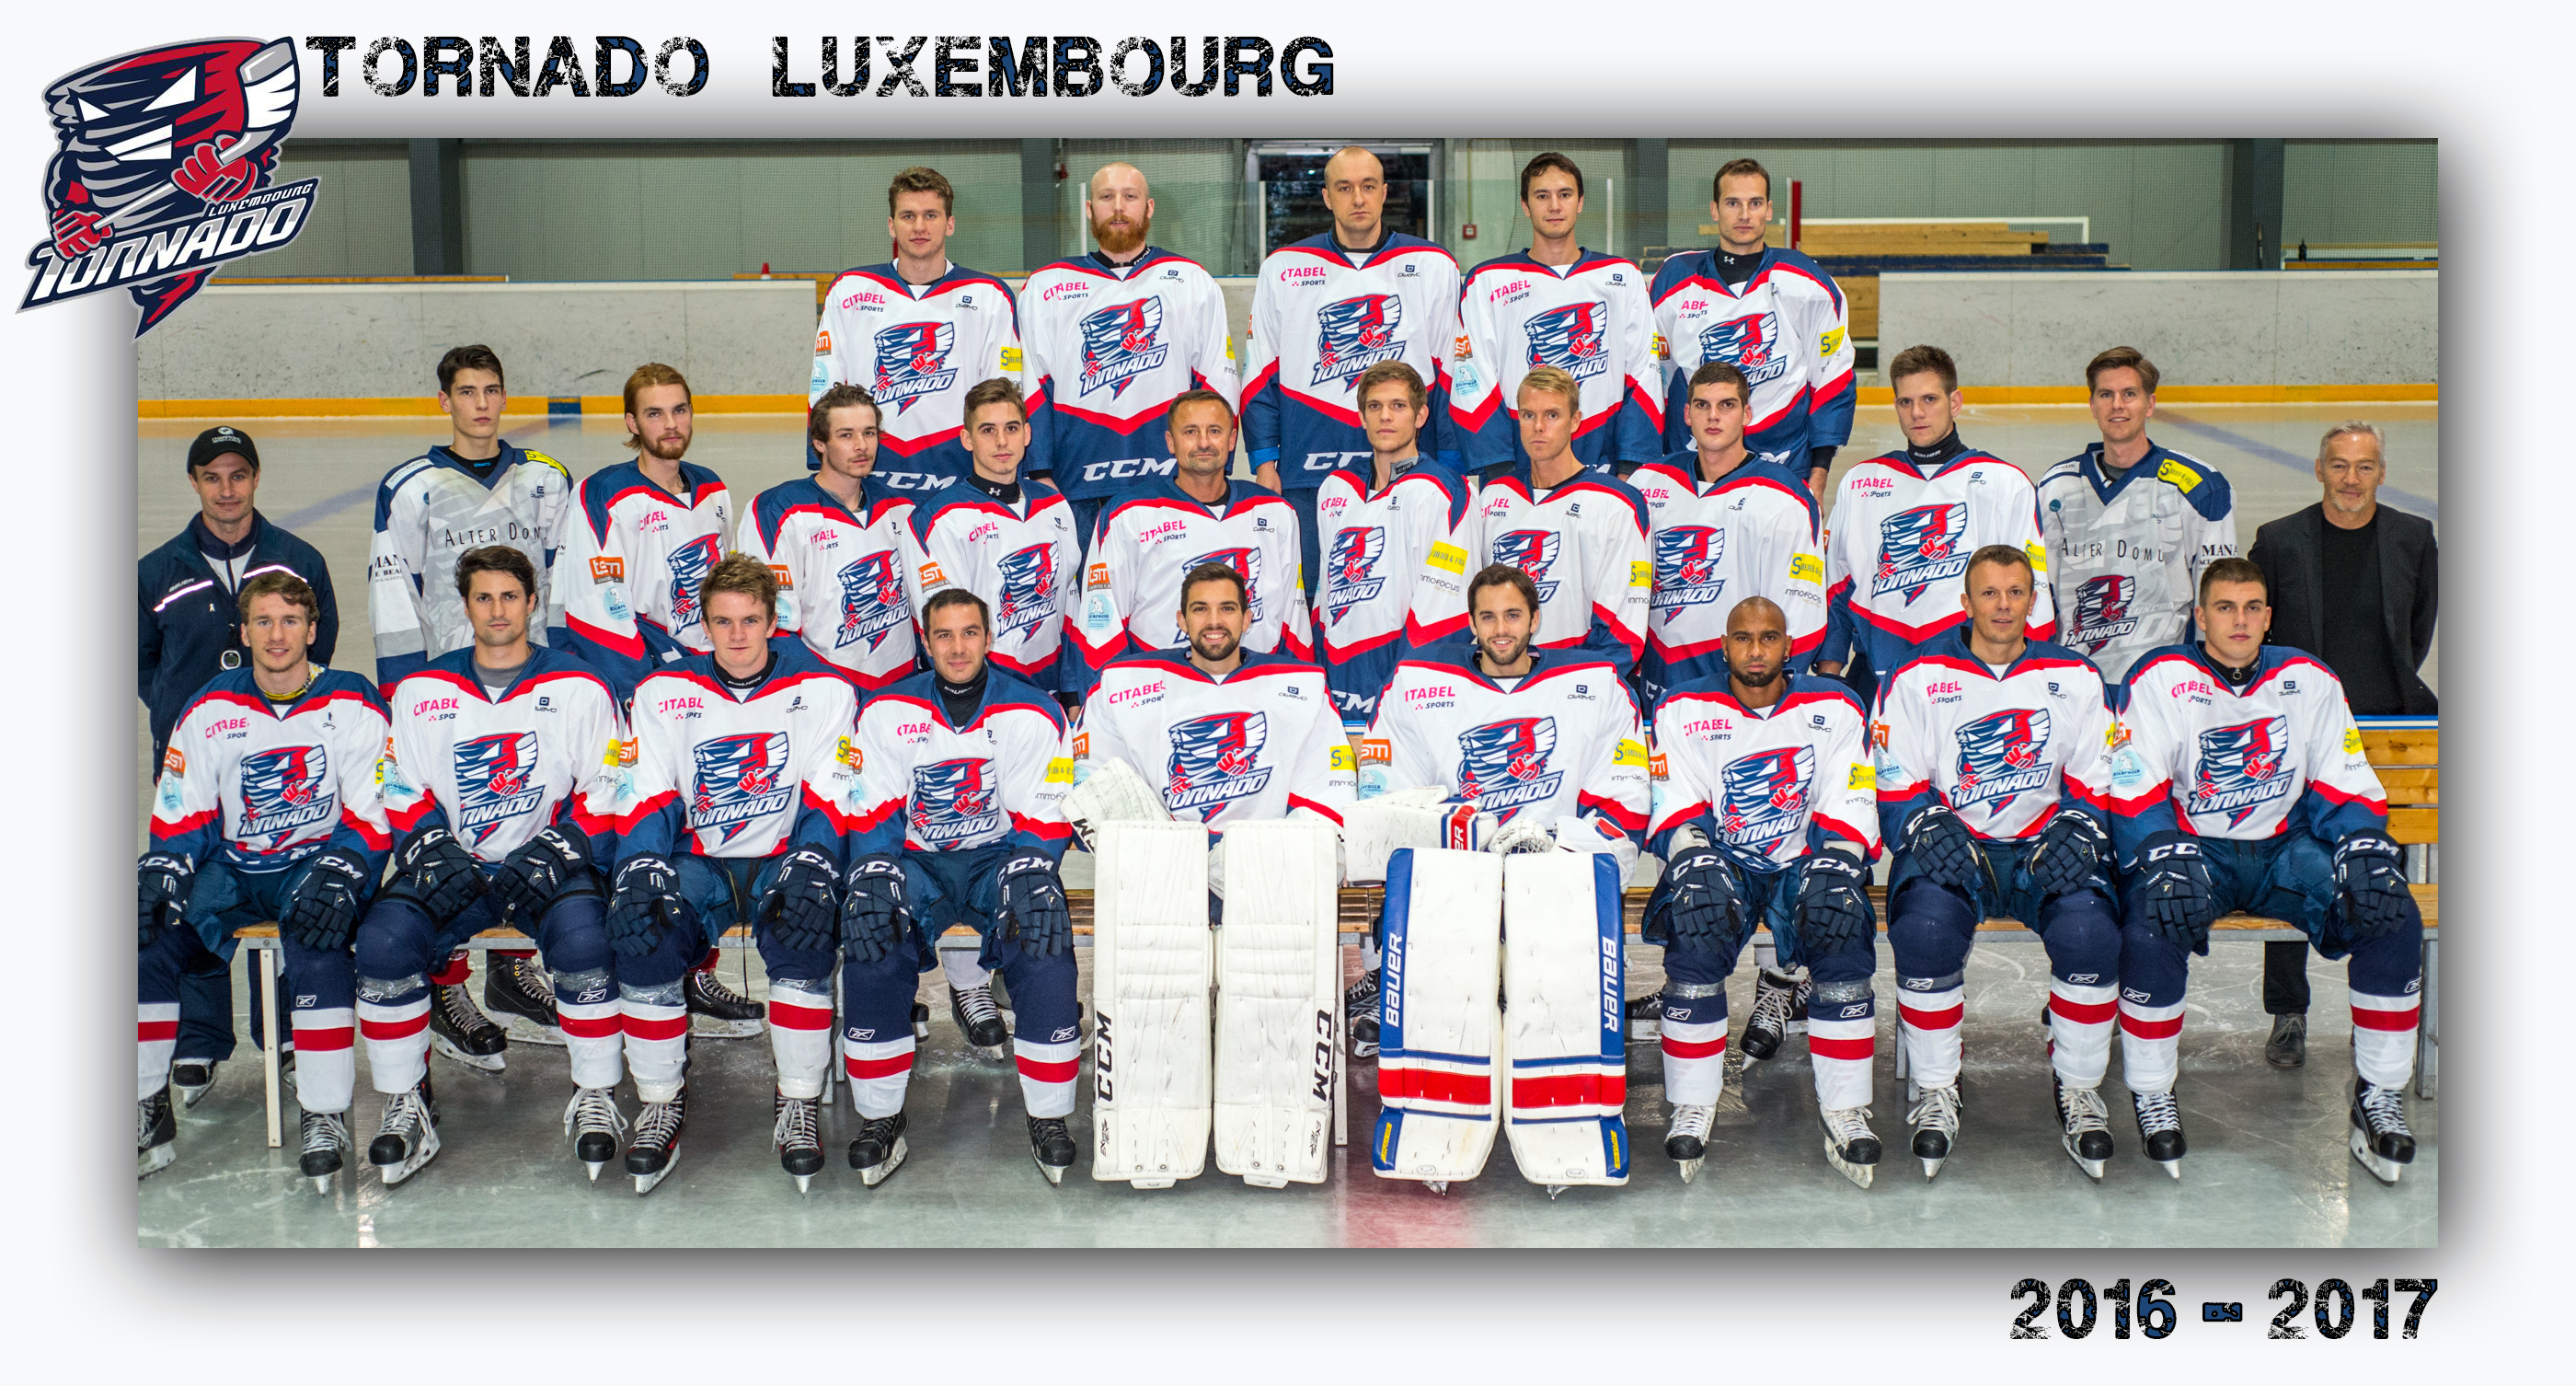 Tornado Luxembourg Teamphoto